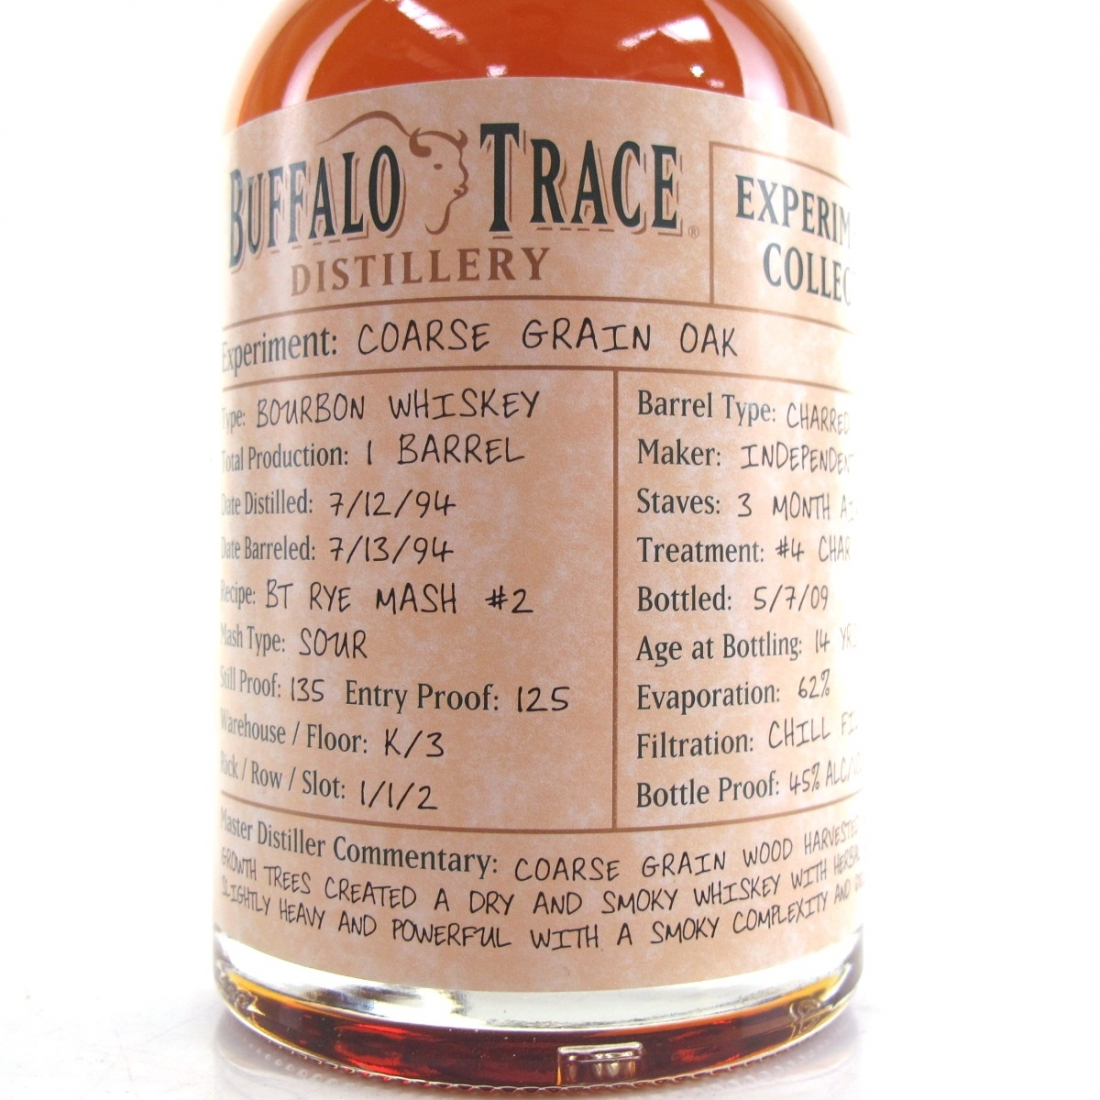 Buffalo Trace 1994 Experimental Collection 14 Year Old 37.5cl / Coarse Grain Oak